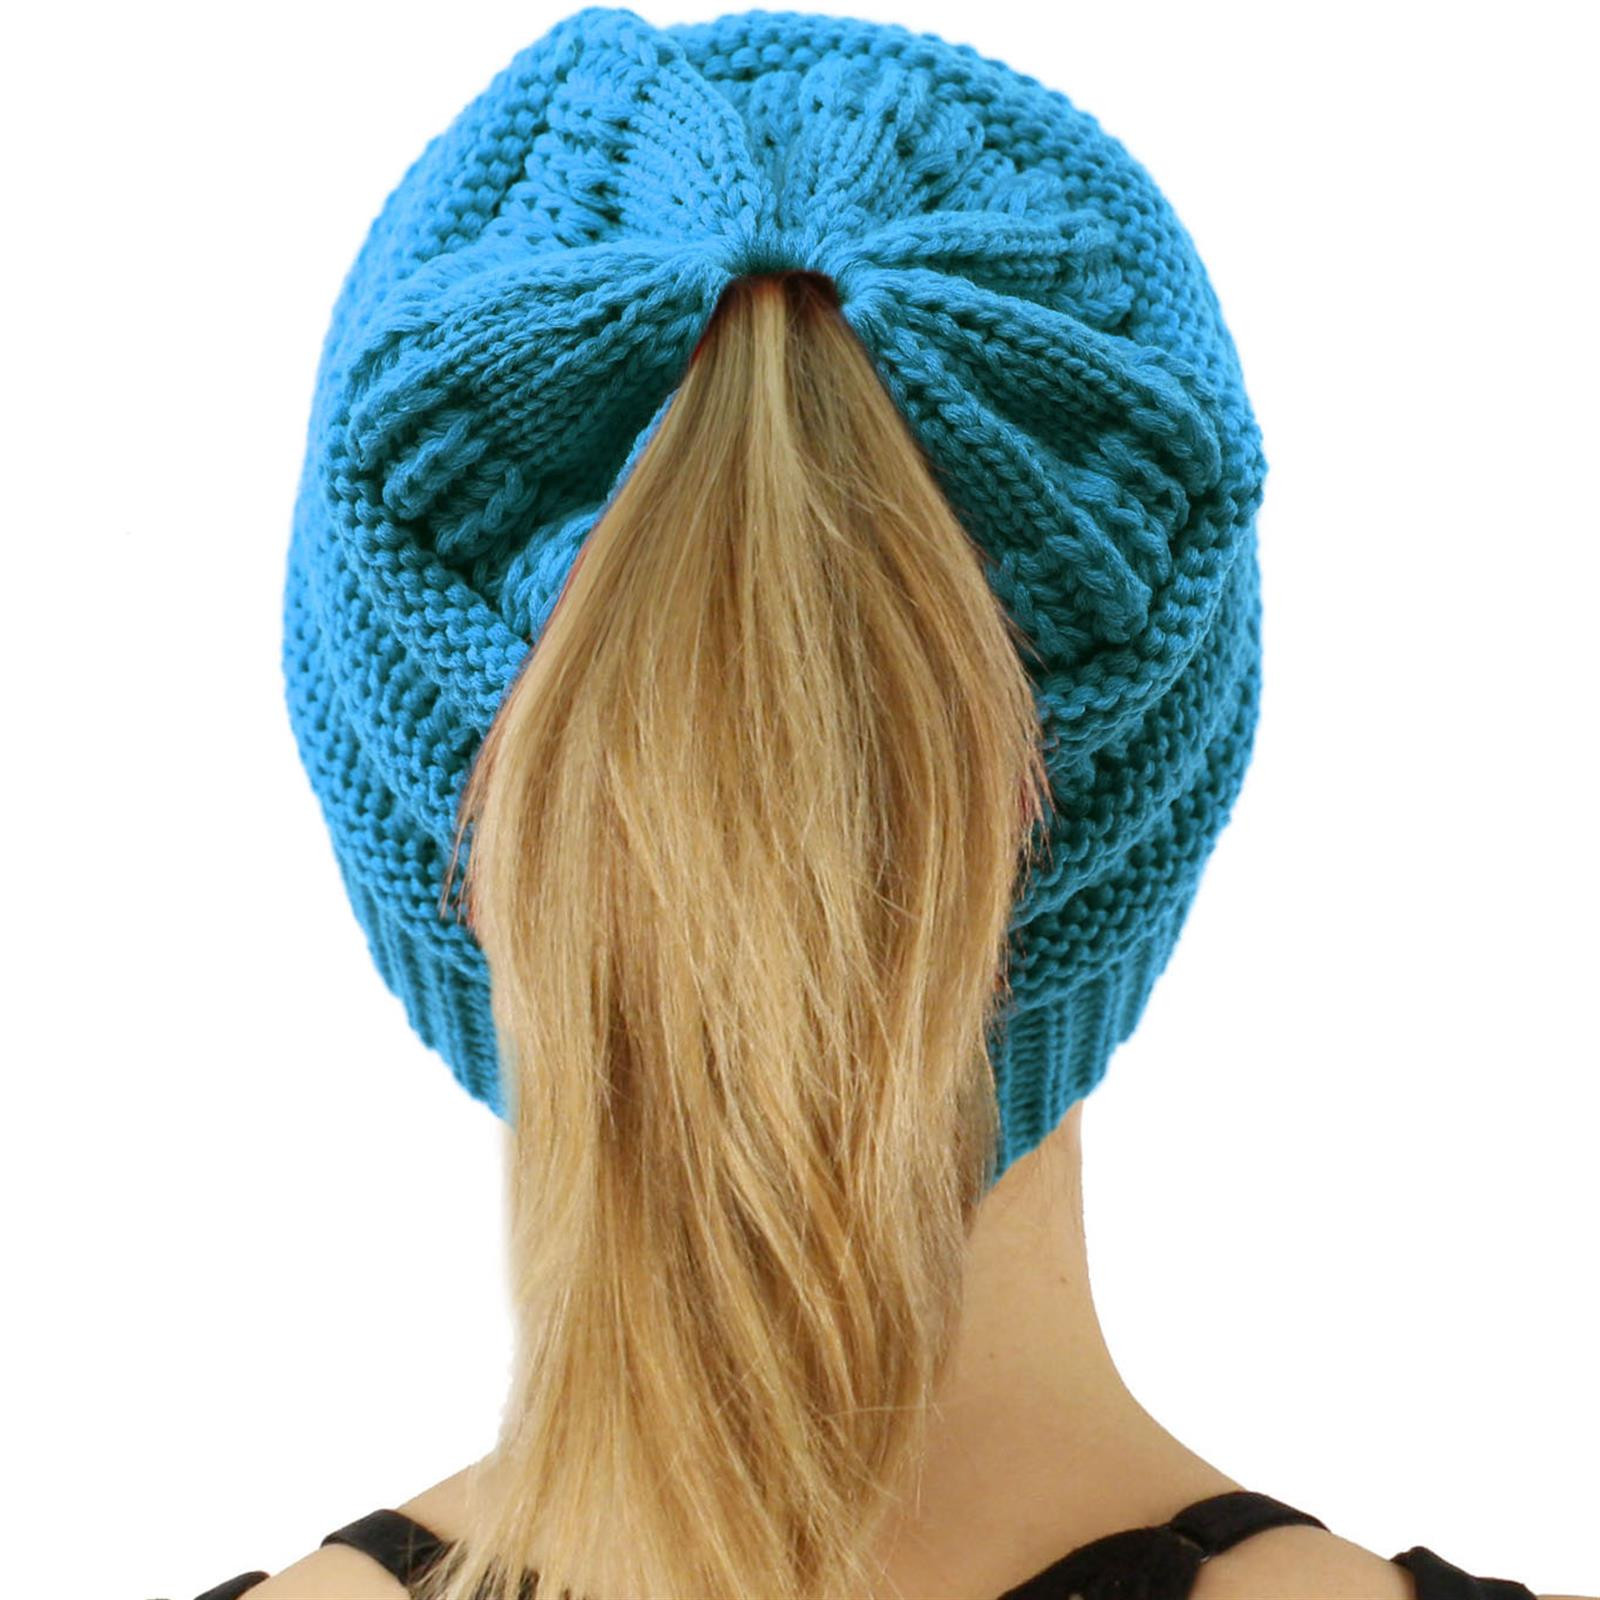 Messy Bun Beanie Hat Lovely Cc Beanietail Messy High Bun Ponytail Stretchy Knit Beanie Of Brilliant 47 Photos Messy Bun Beanie Hat